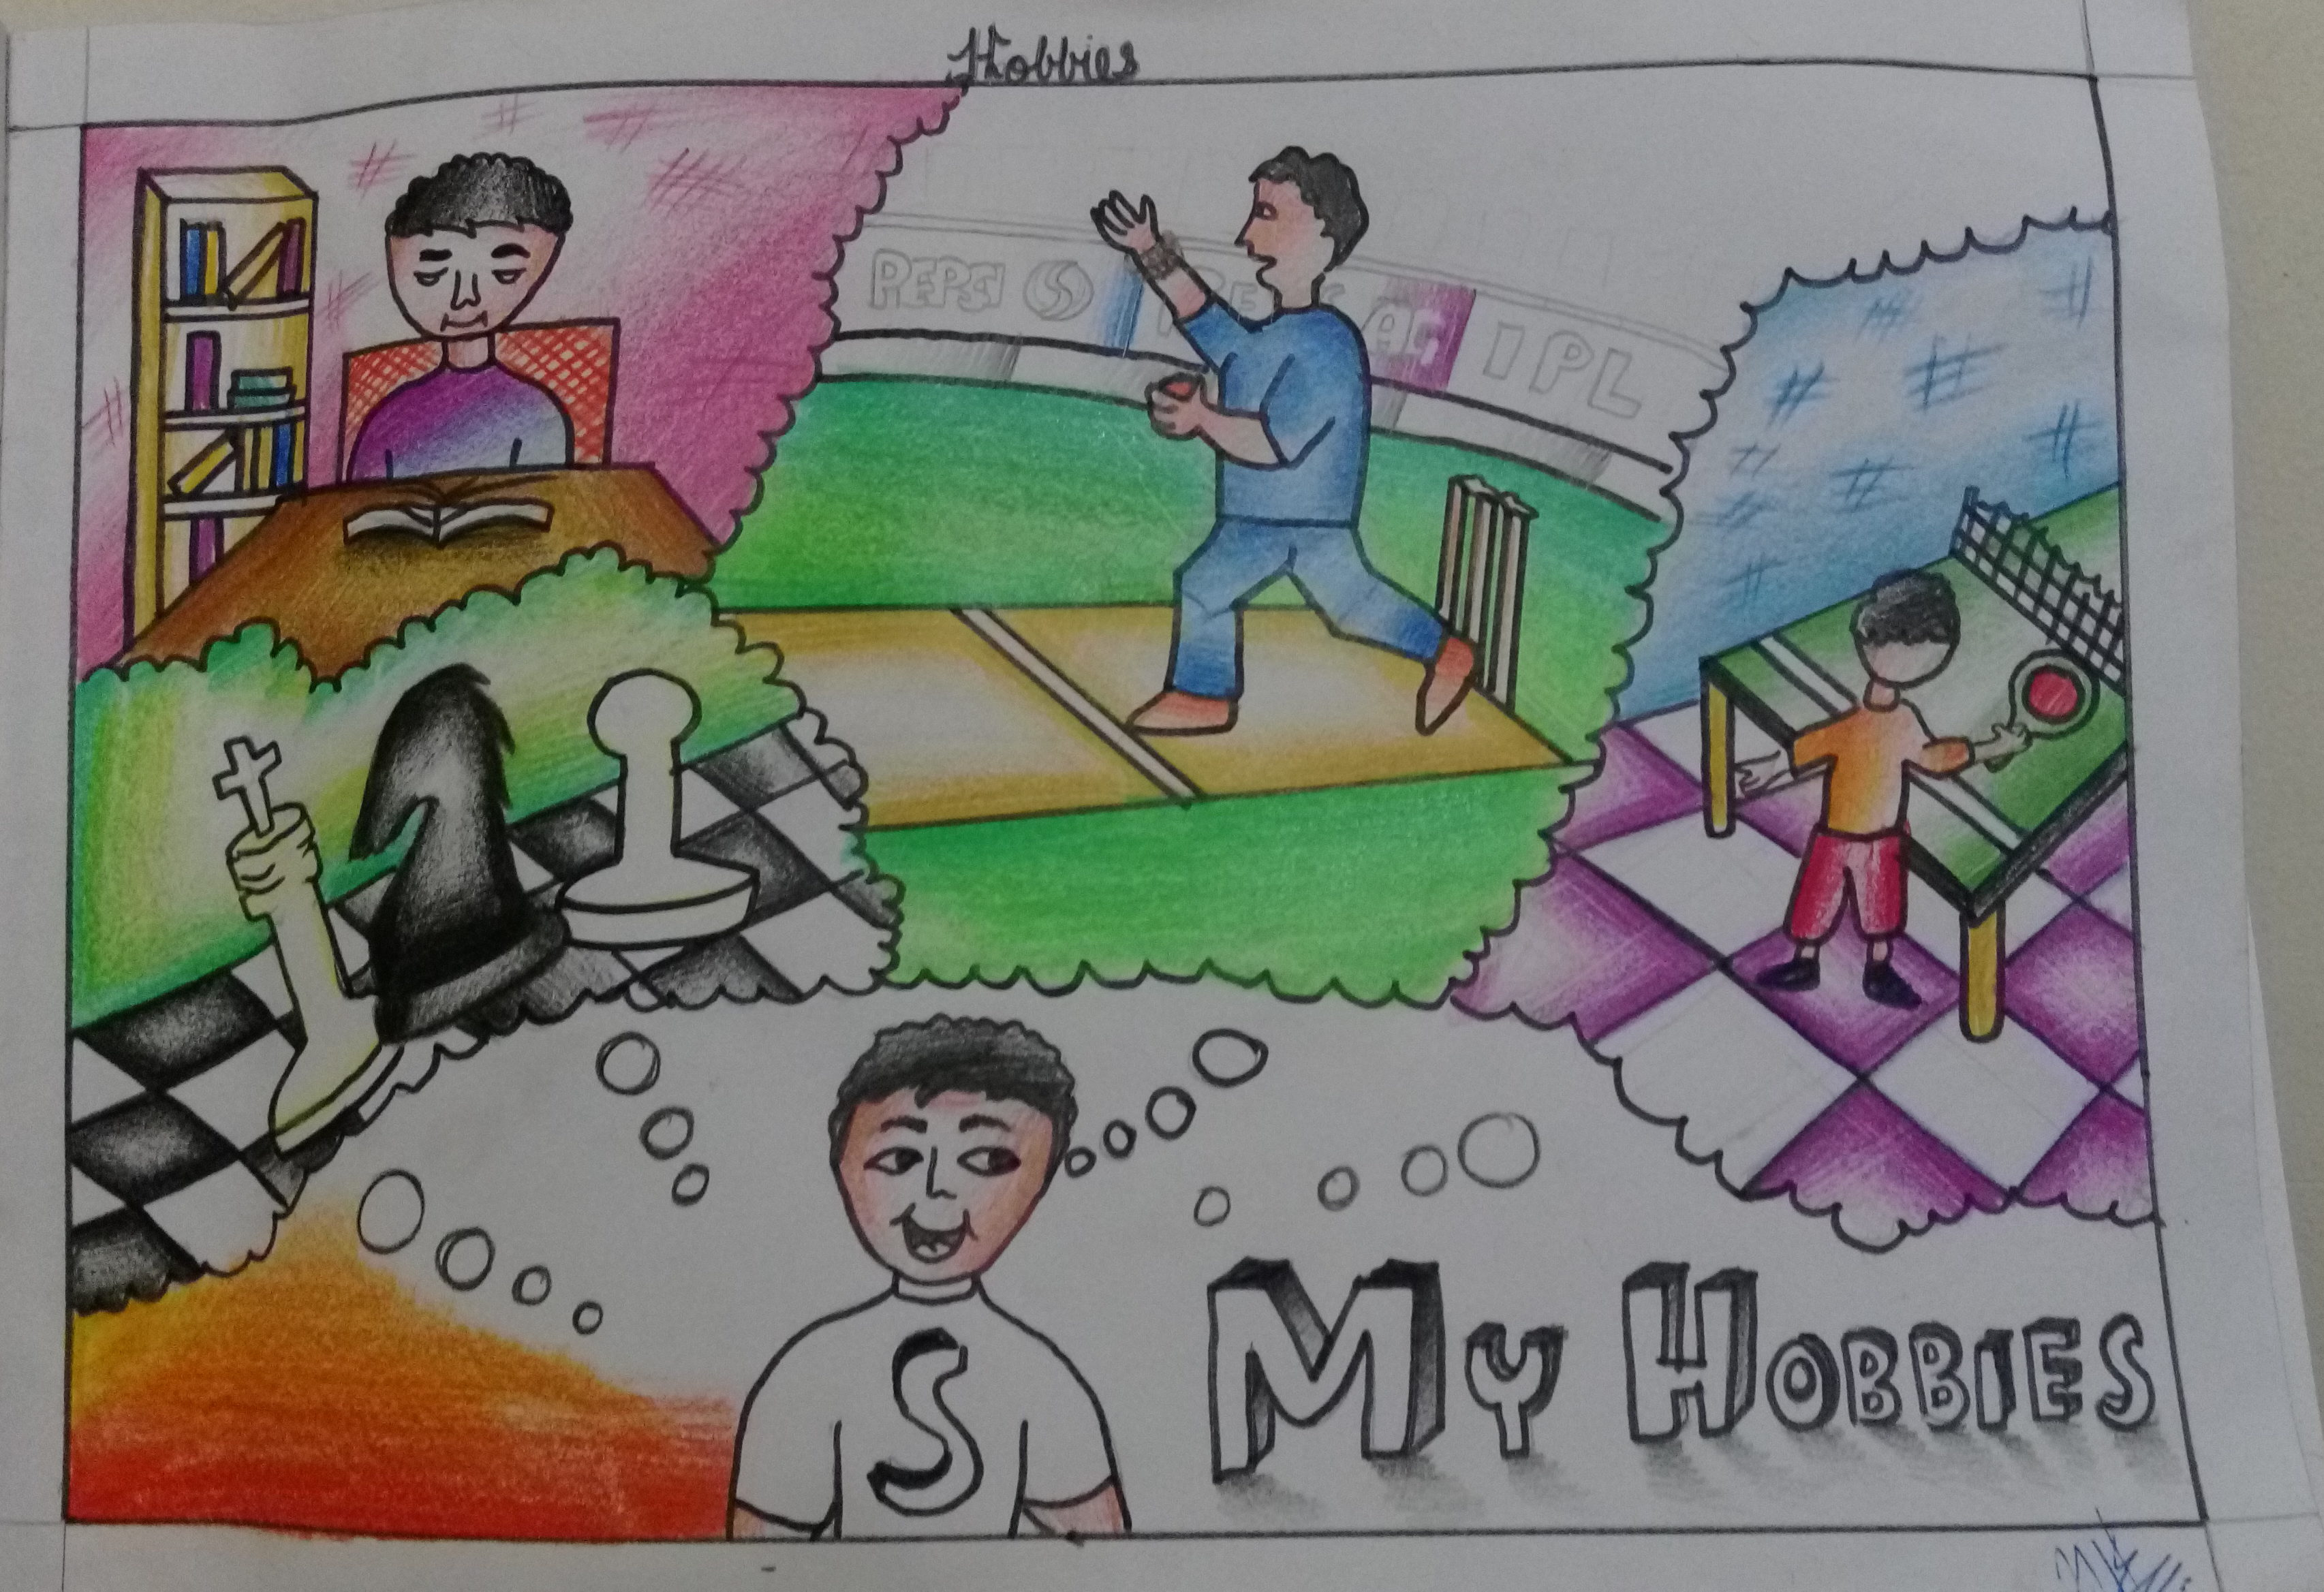 my hobby drawing Contextual translation of my hobby is drawing into hindi human translations with examples: मेरा शौक, मेरा शौक गा है, मेरा शौक रंग है, मेरा शौक आ रहा है.